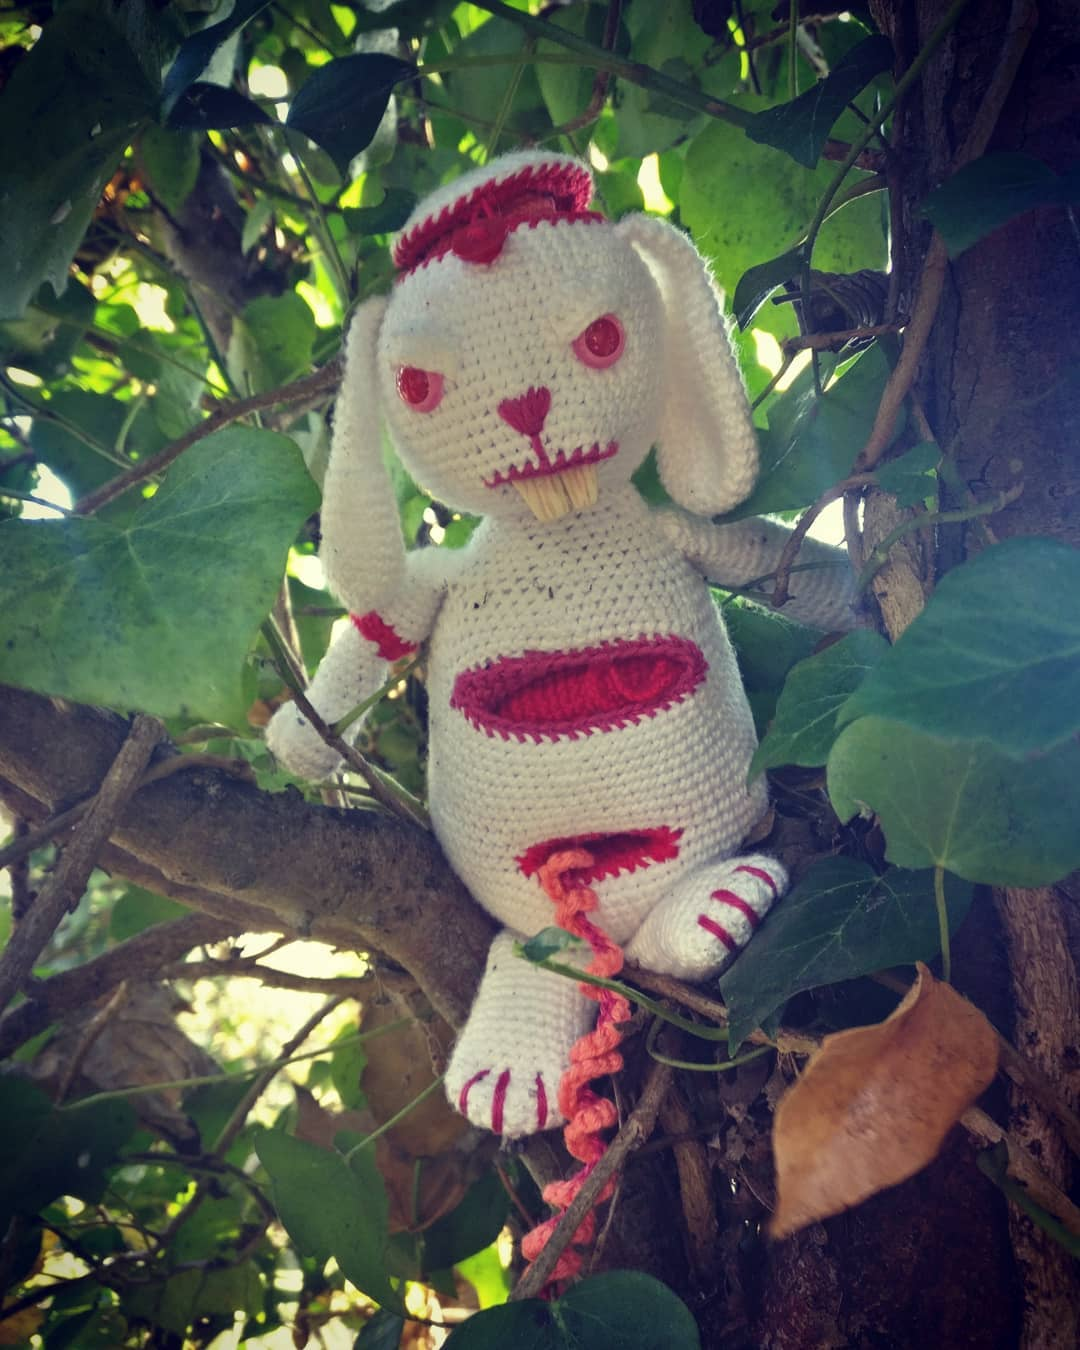 Meet Ed Zombunnny, An Amazing Amigurumi By Sarah Brooke ... Not For The Squeamish!